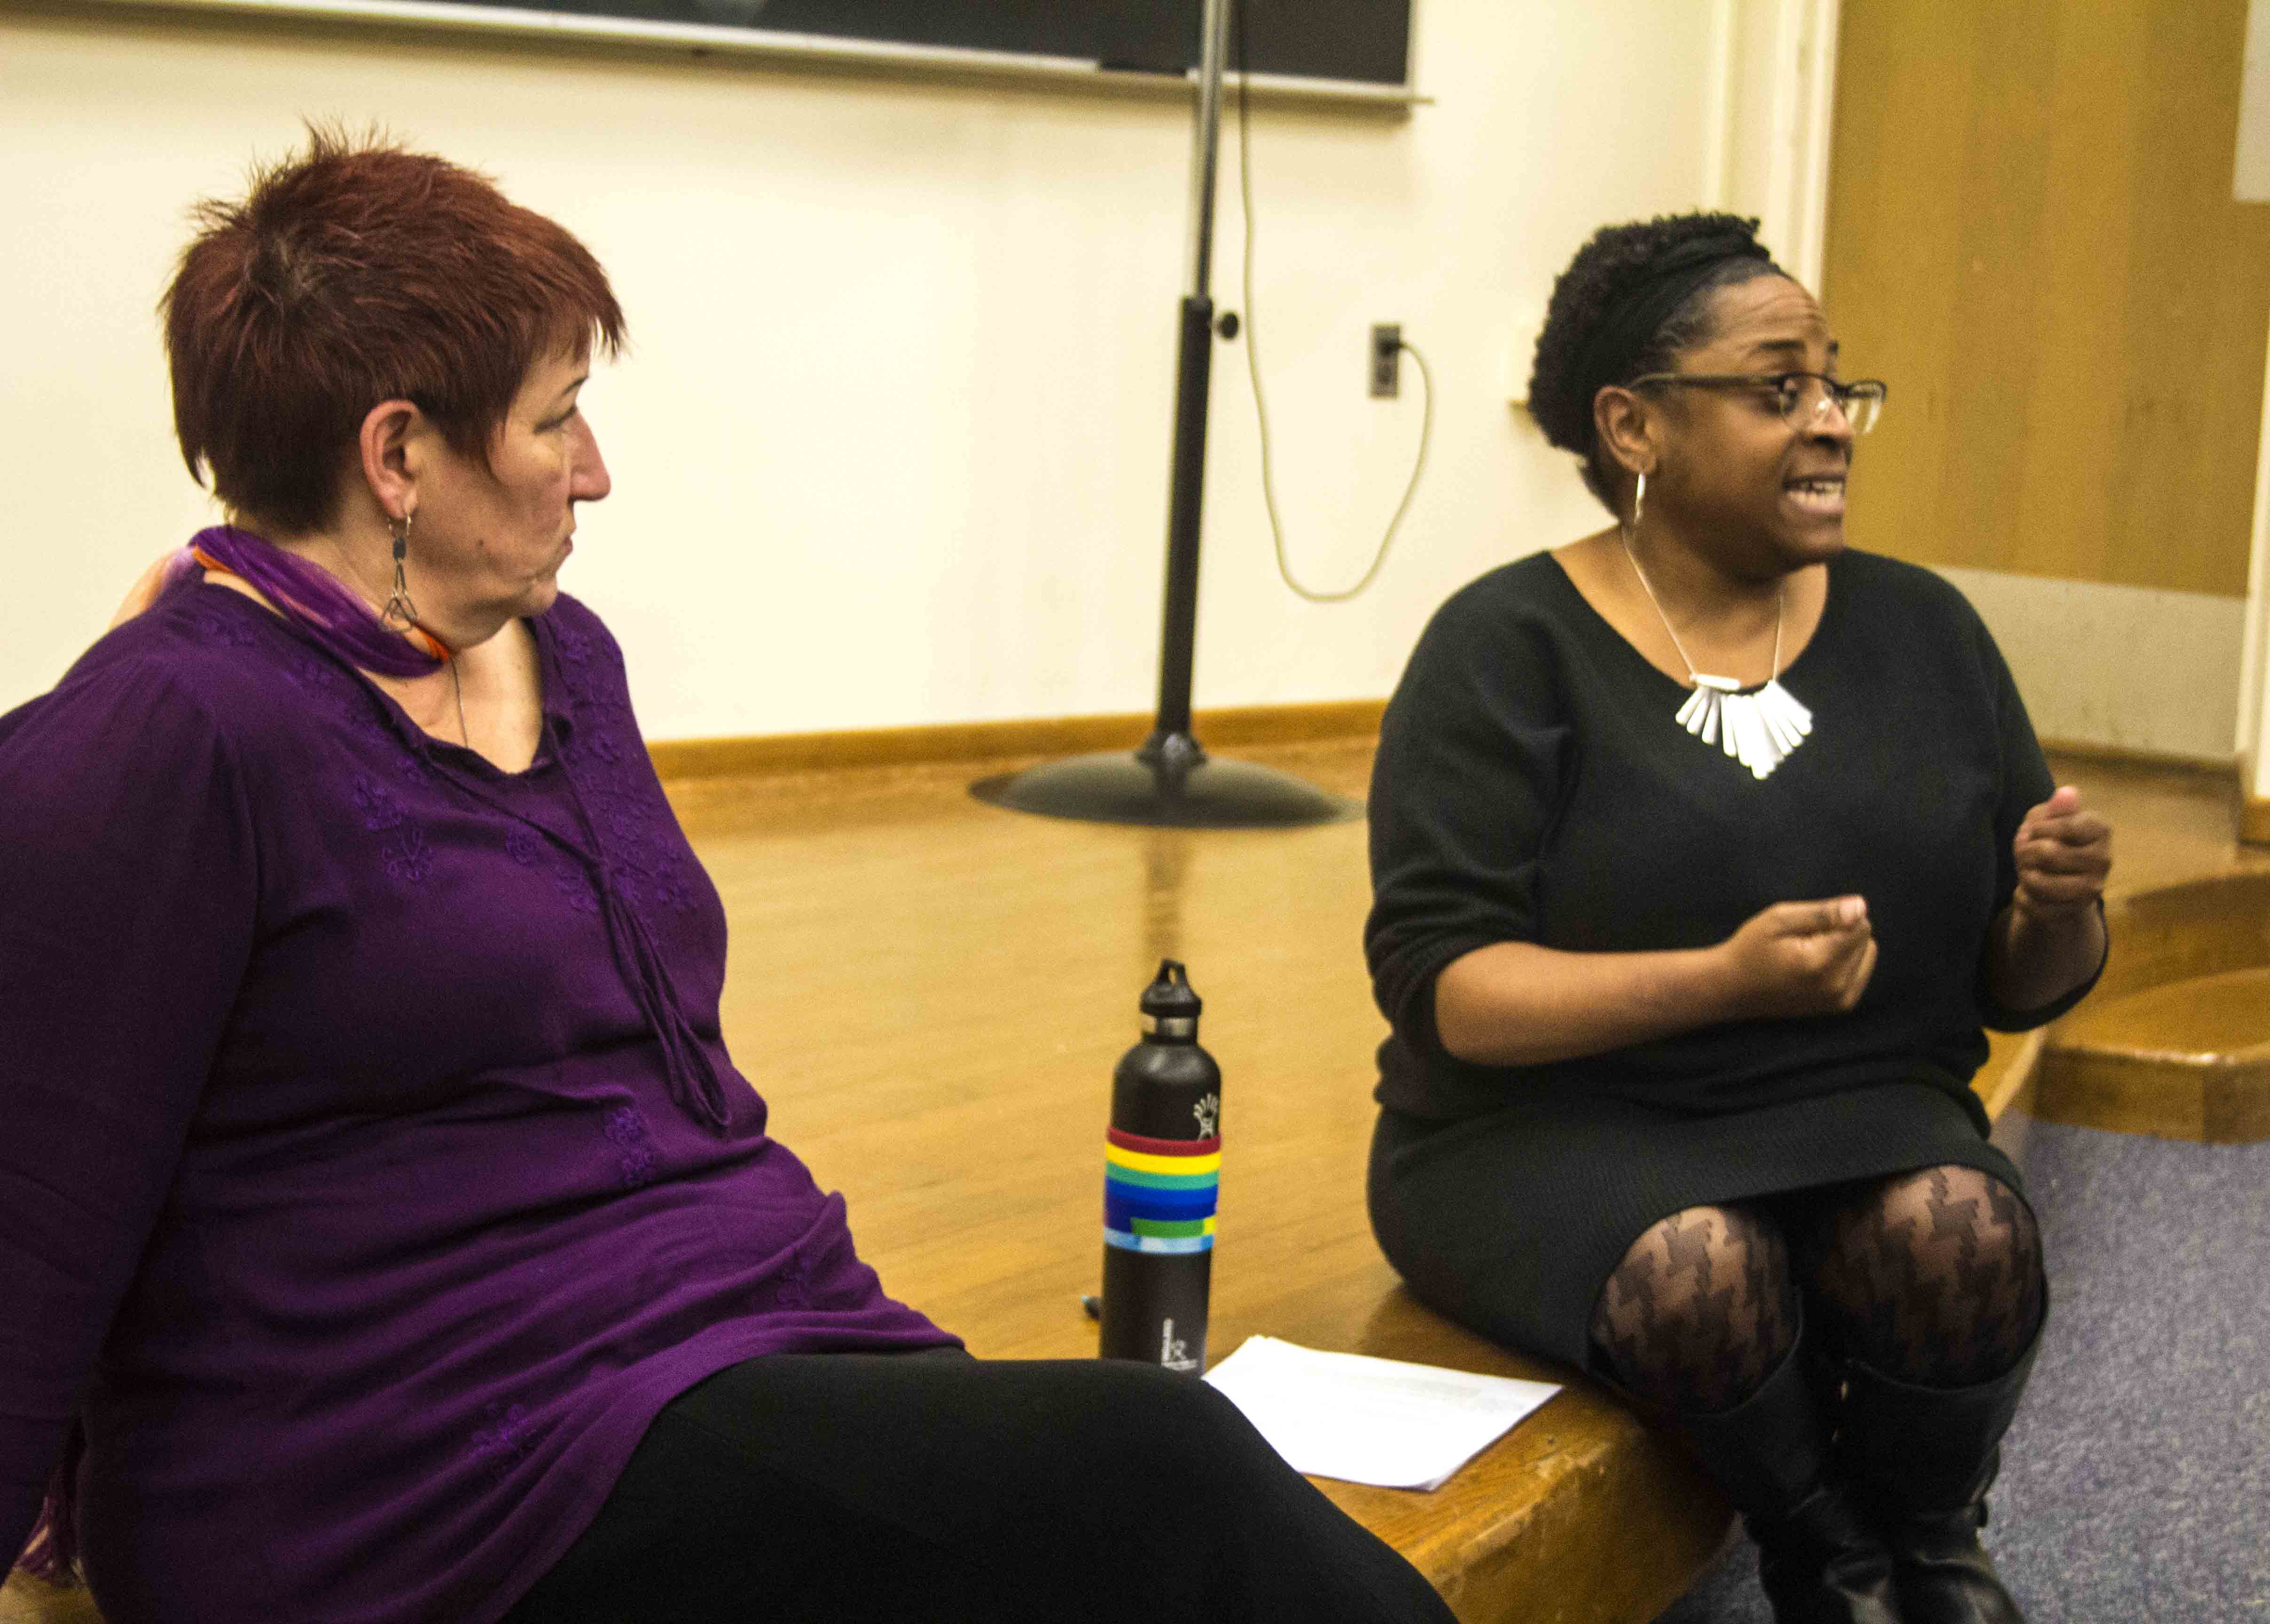 Jeannie Ludlow, a professor of women's studies and Yolanda Williams, an academic advisor answer questions on abortion at the discussion after the viewing of the film